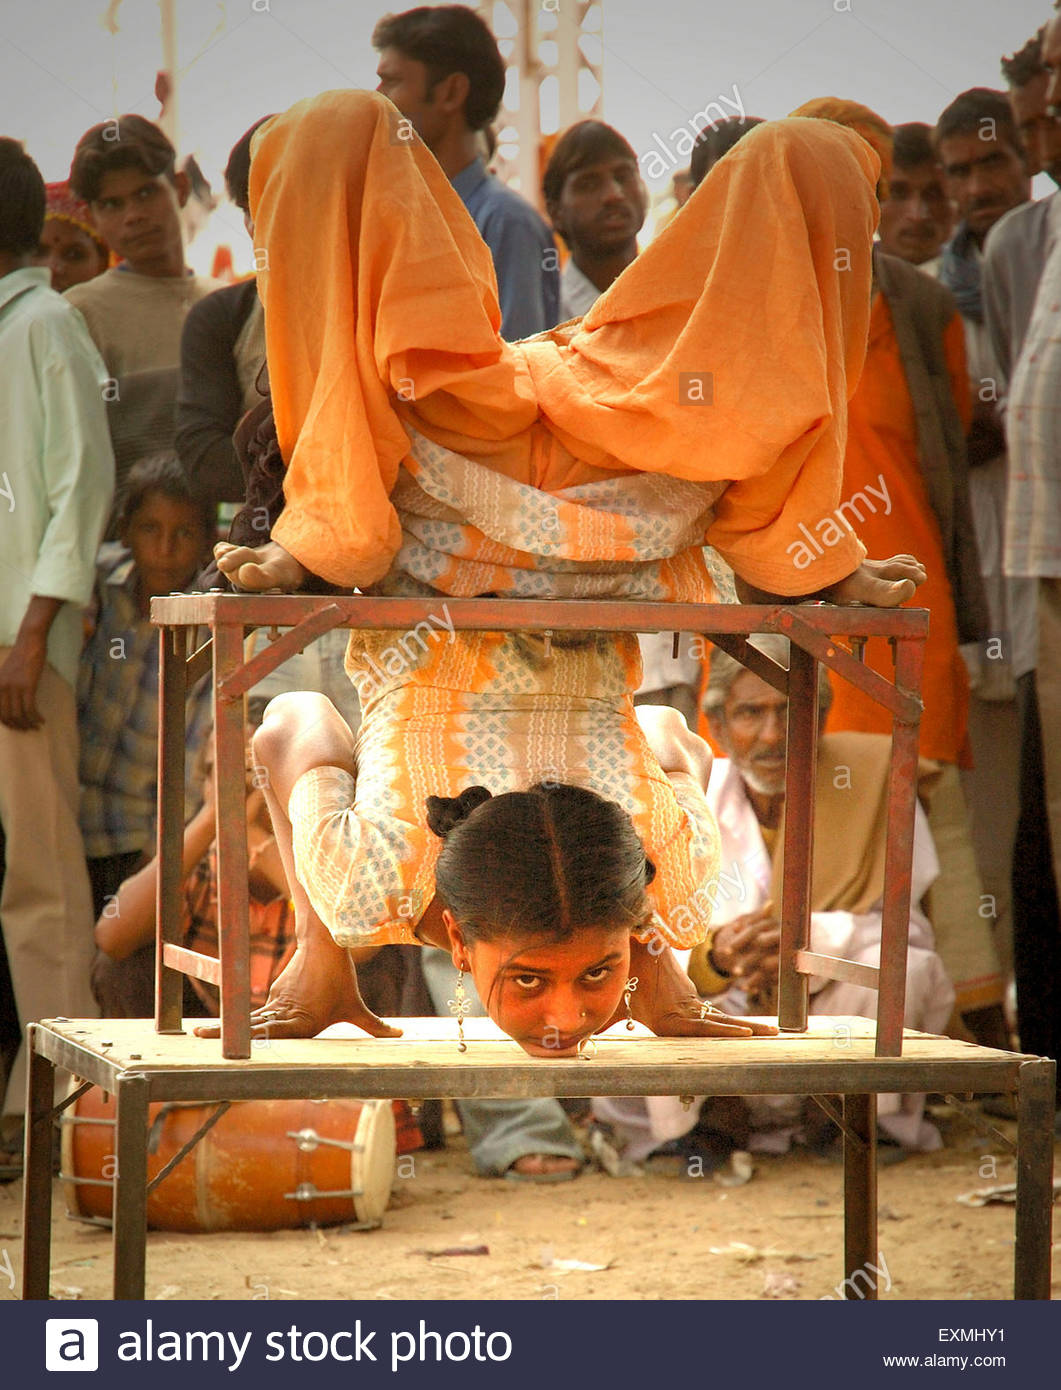 Bending over backwards to earn a living ; India - Stock Image